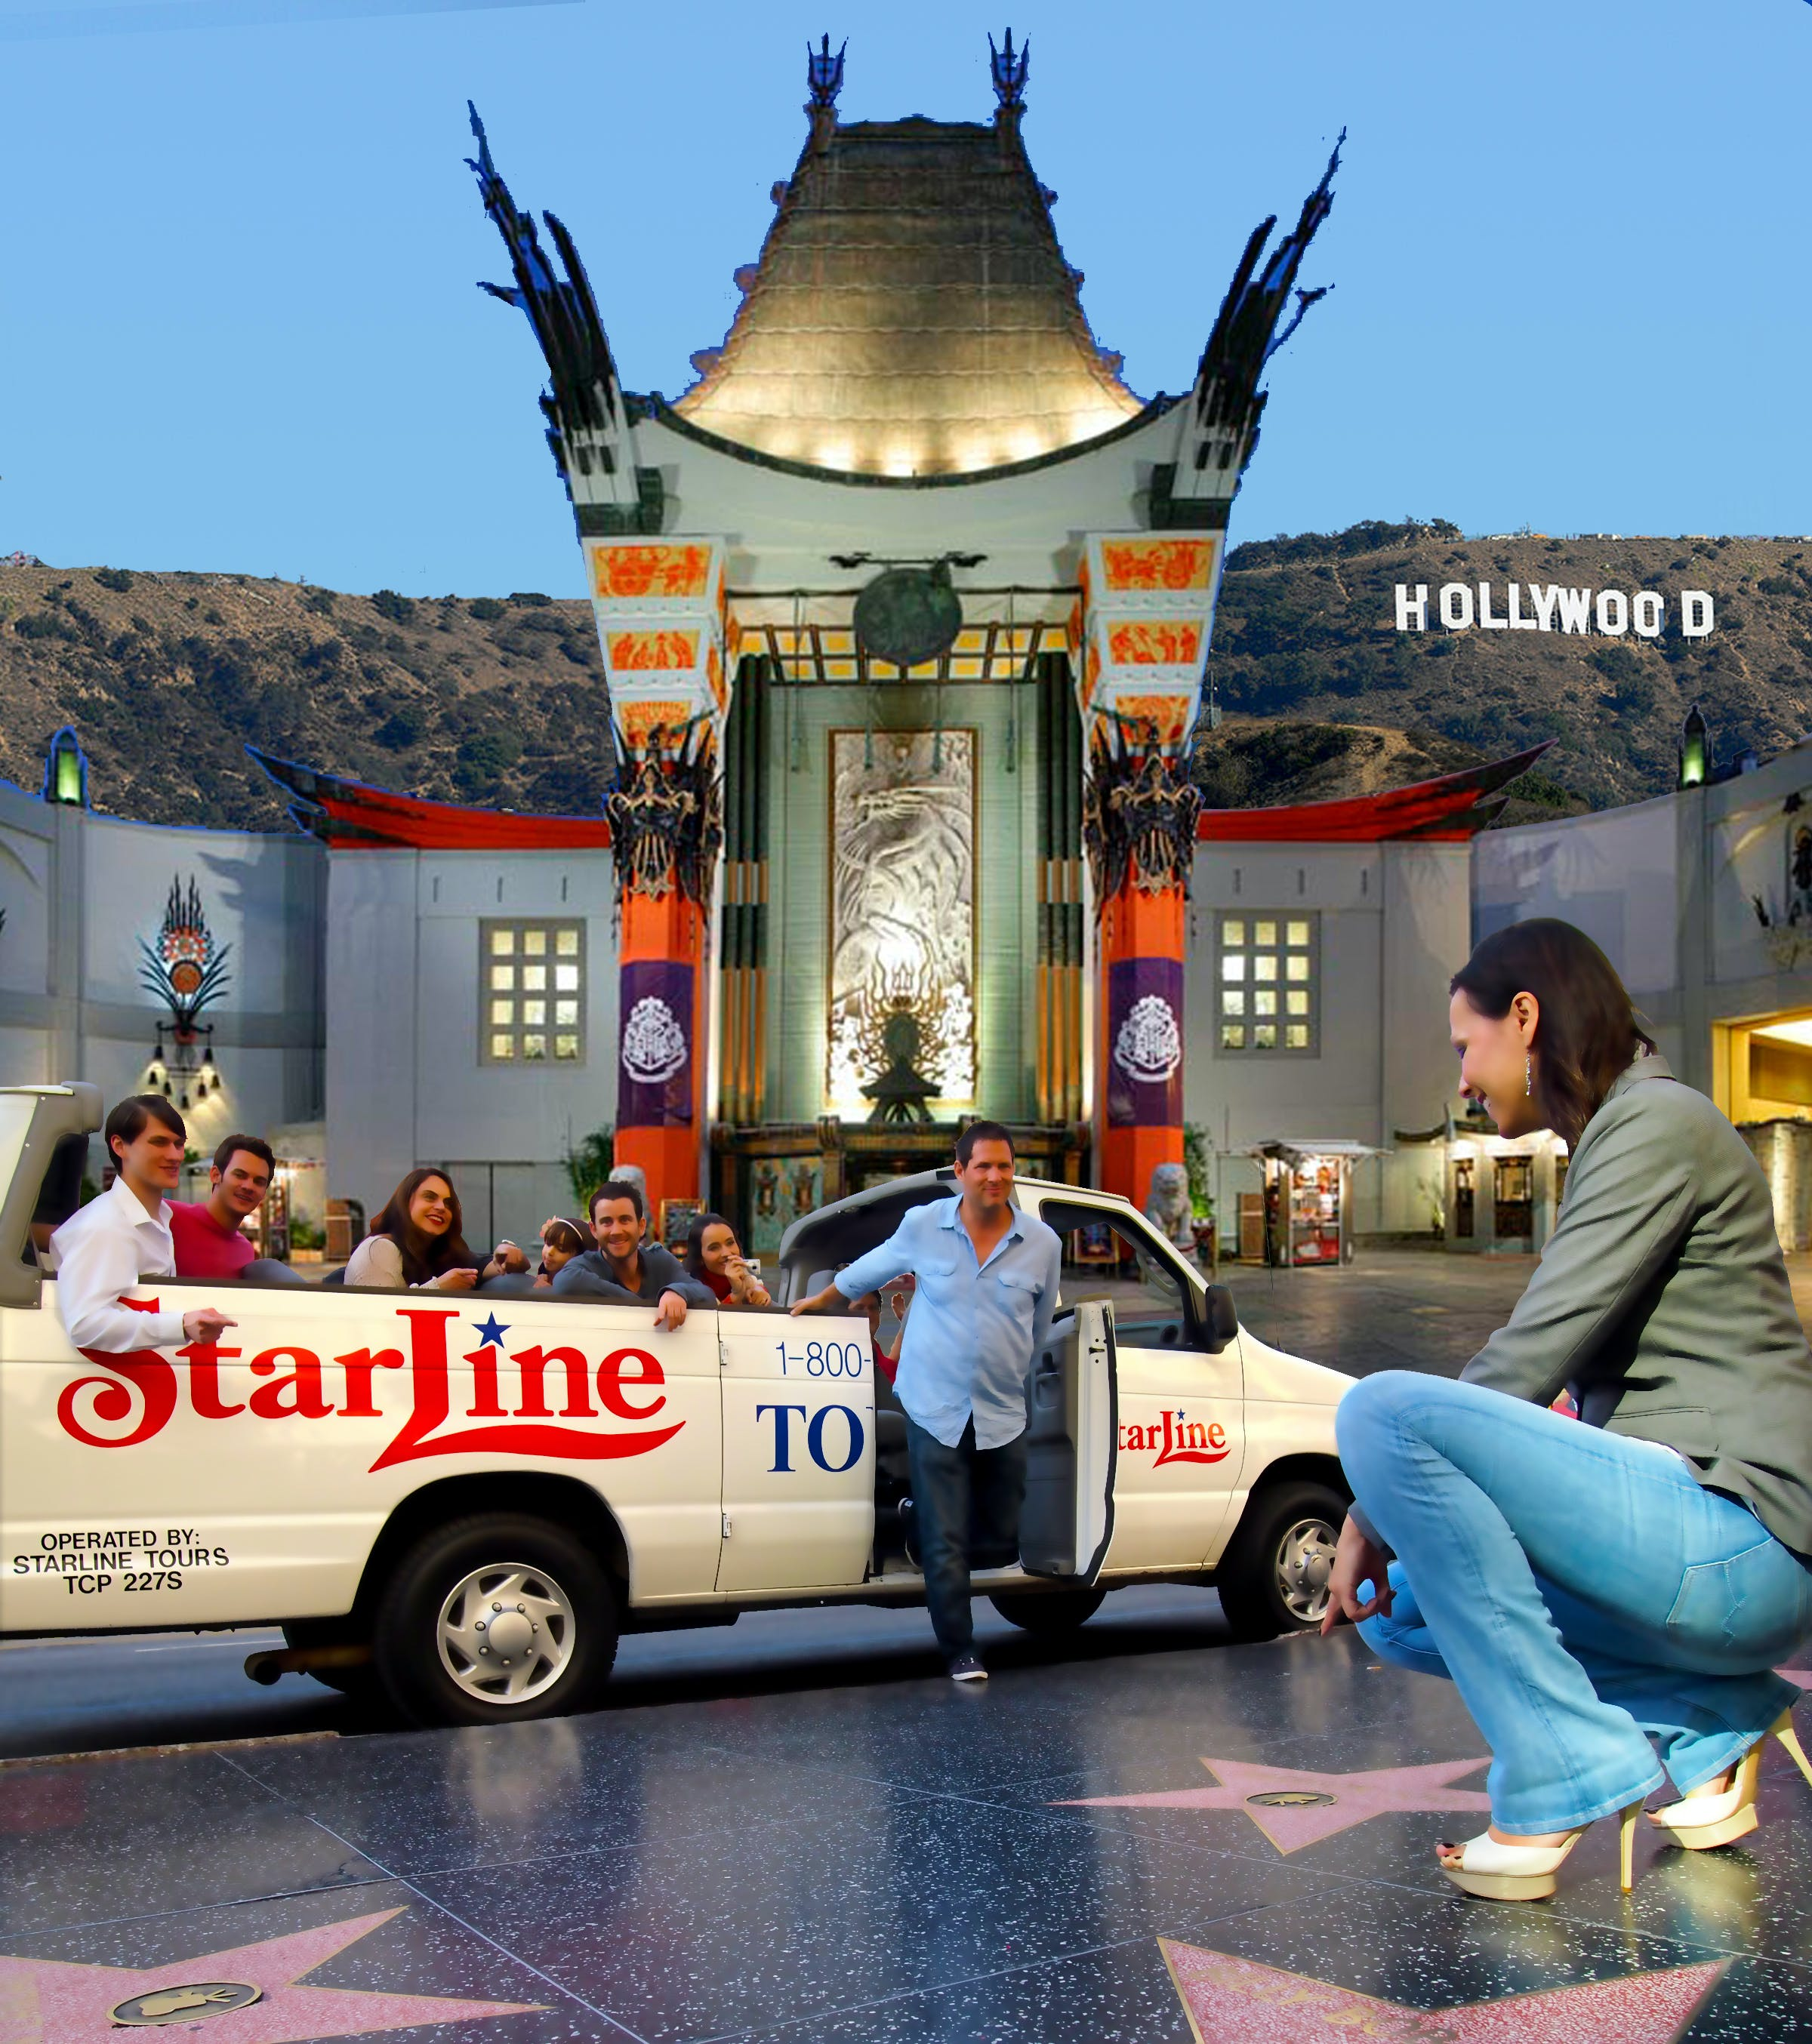 Hollywood stars homes locations